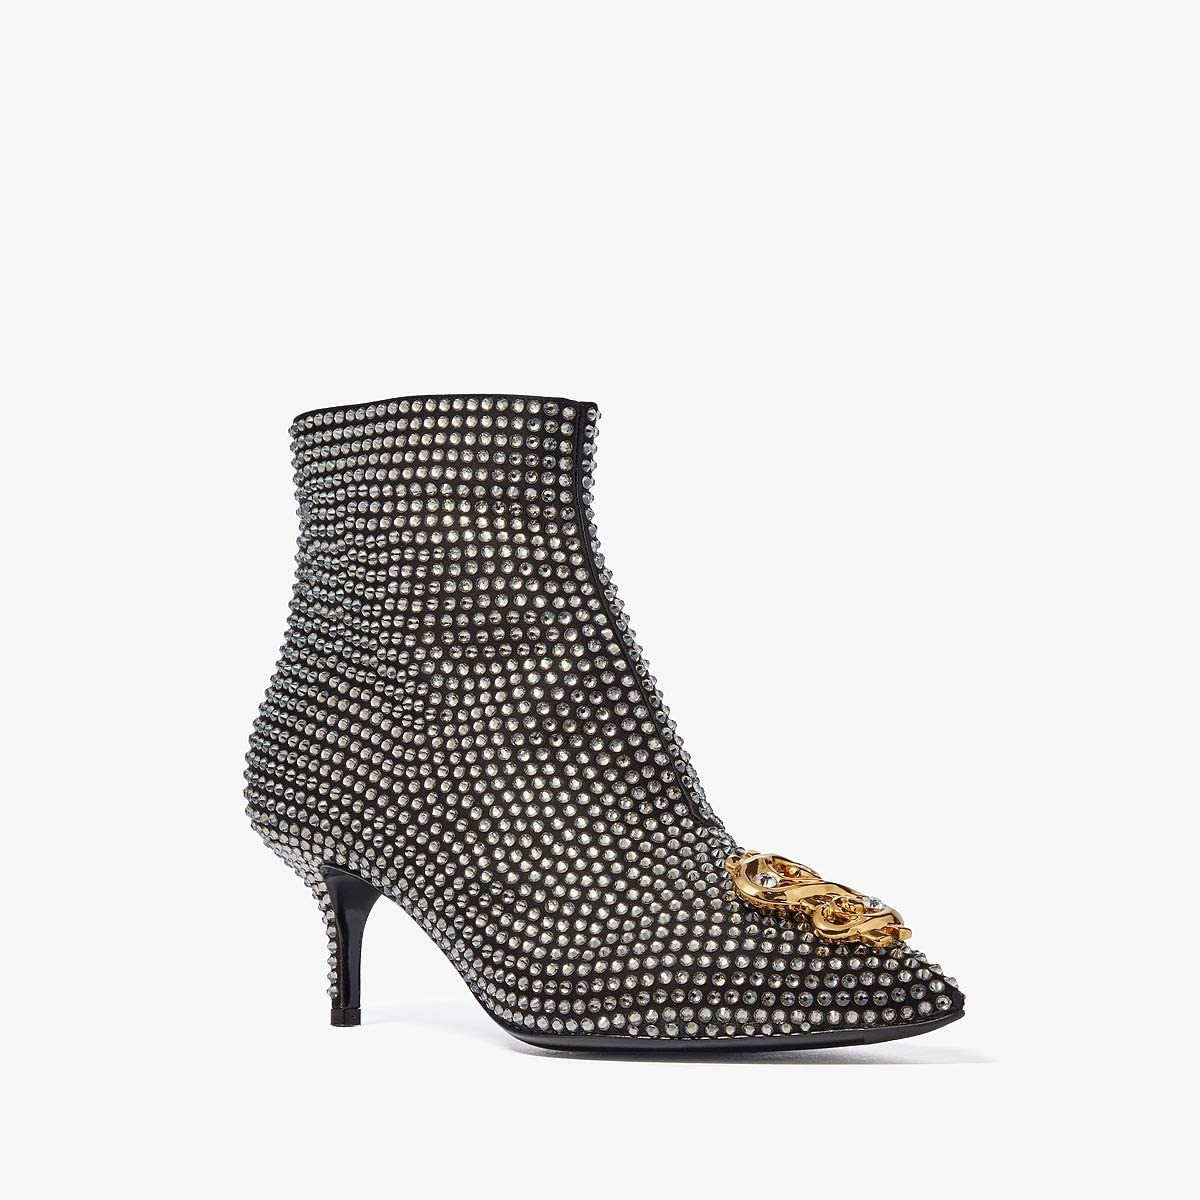 Moschino Crystal Bootie | Women's shoes | 2020 Newest